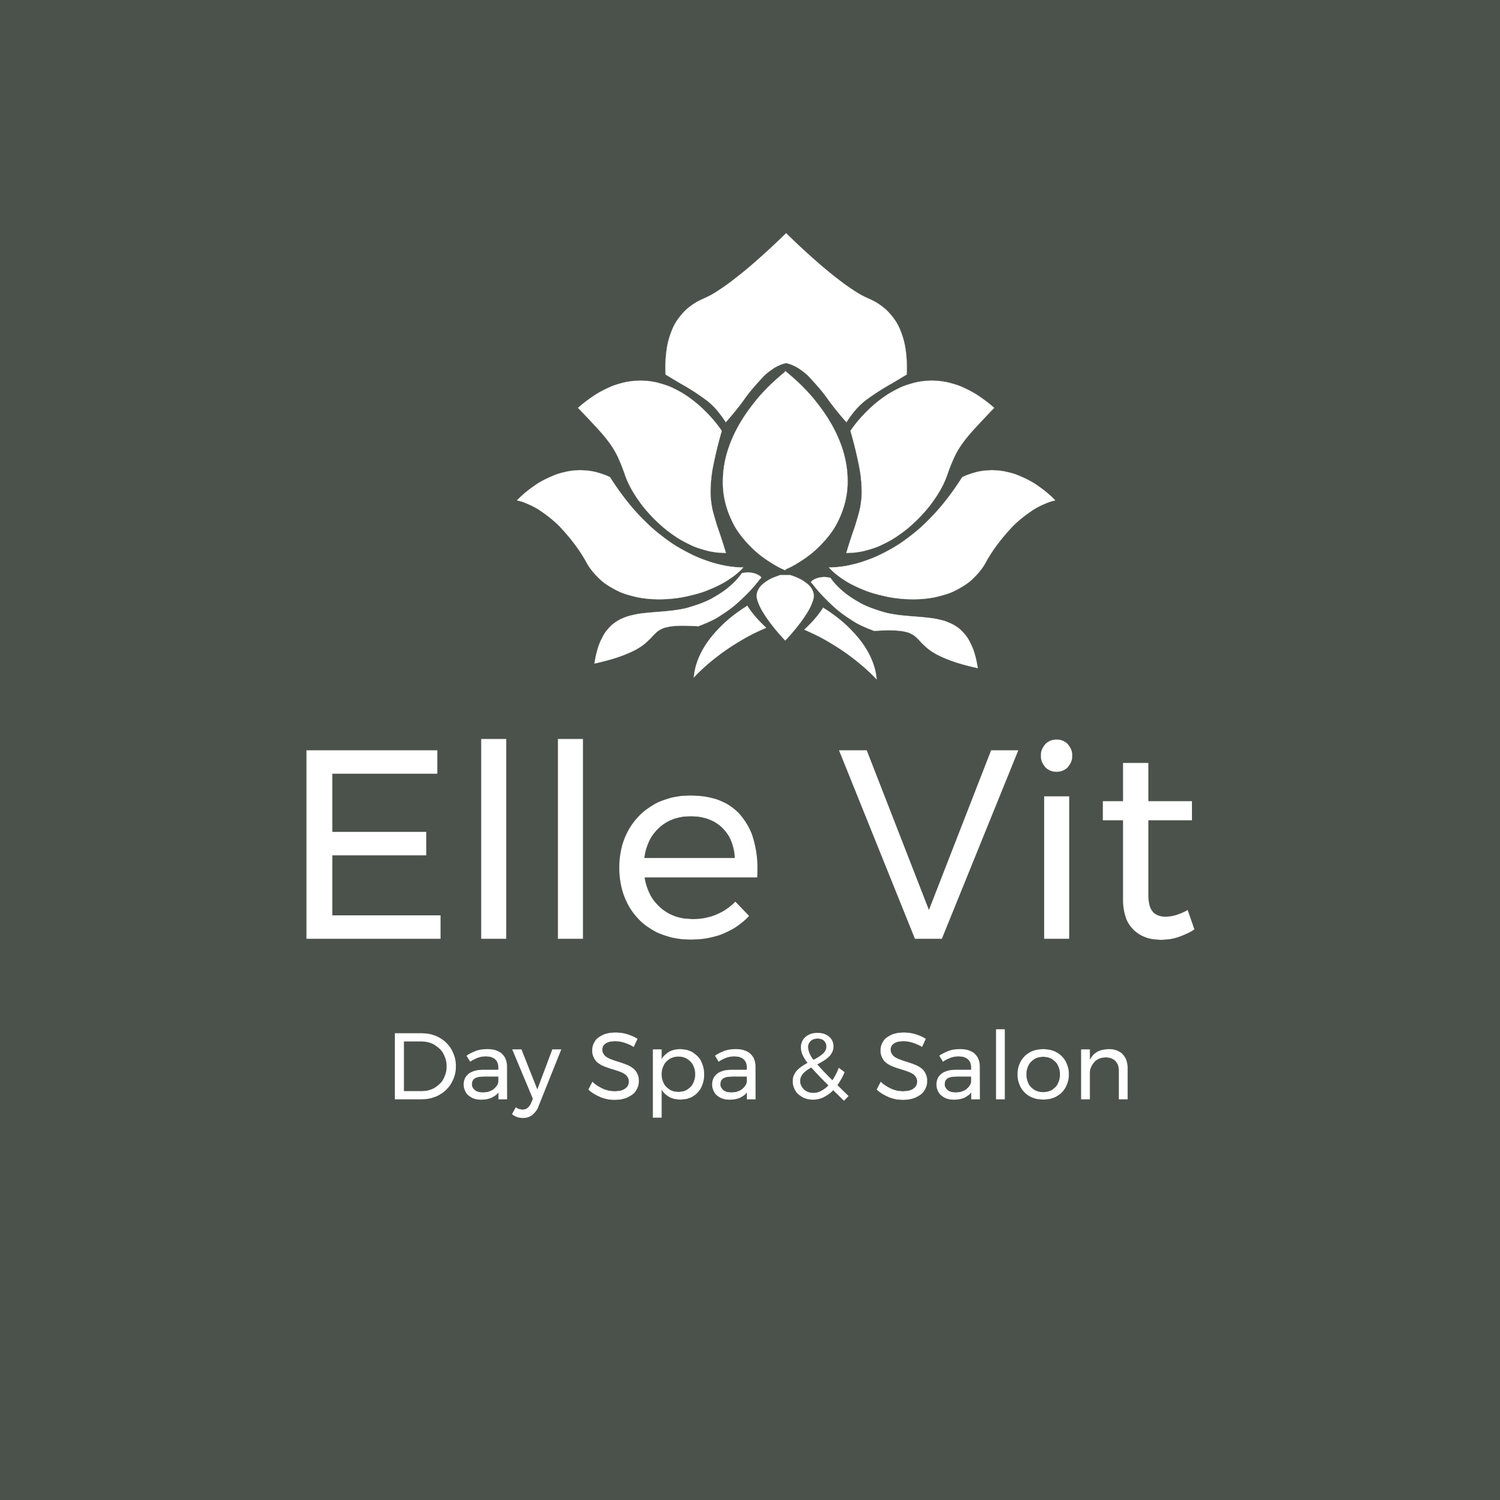 ELLE VIT DAY SPA & SALON